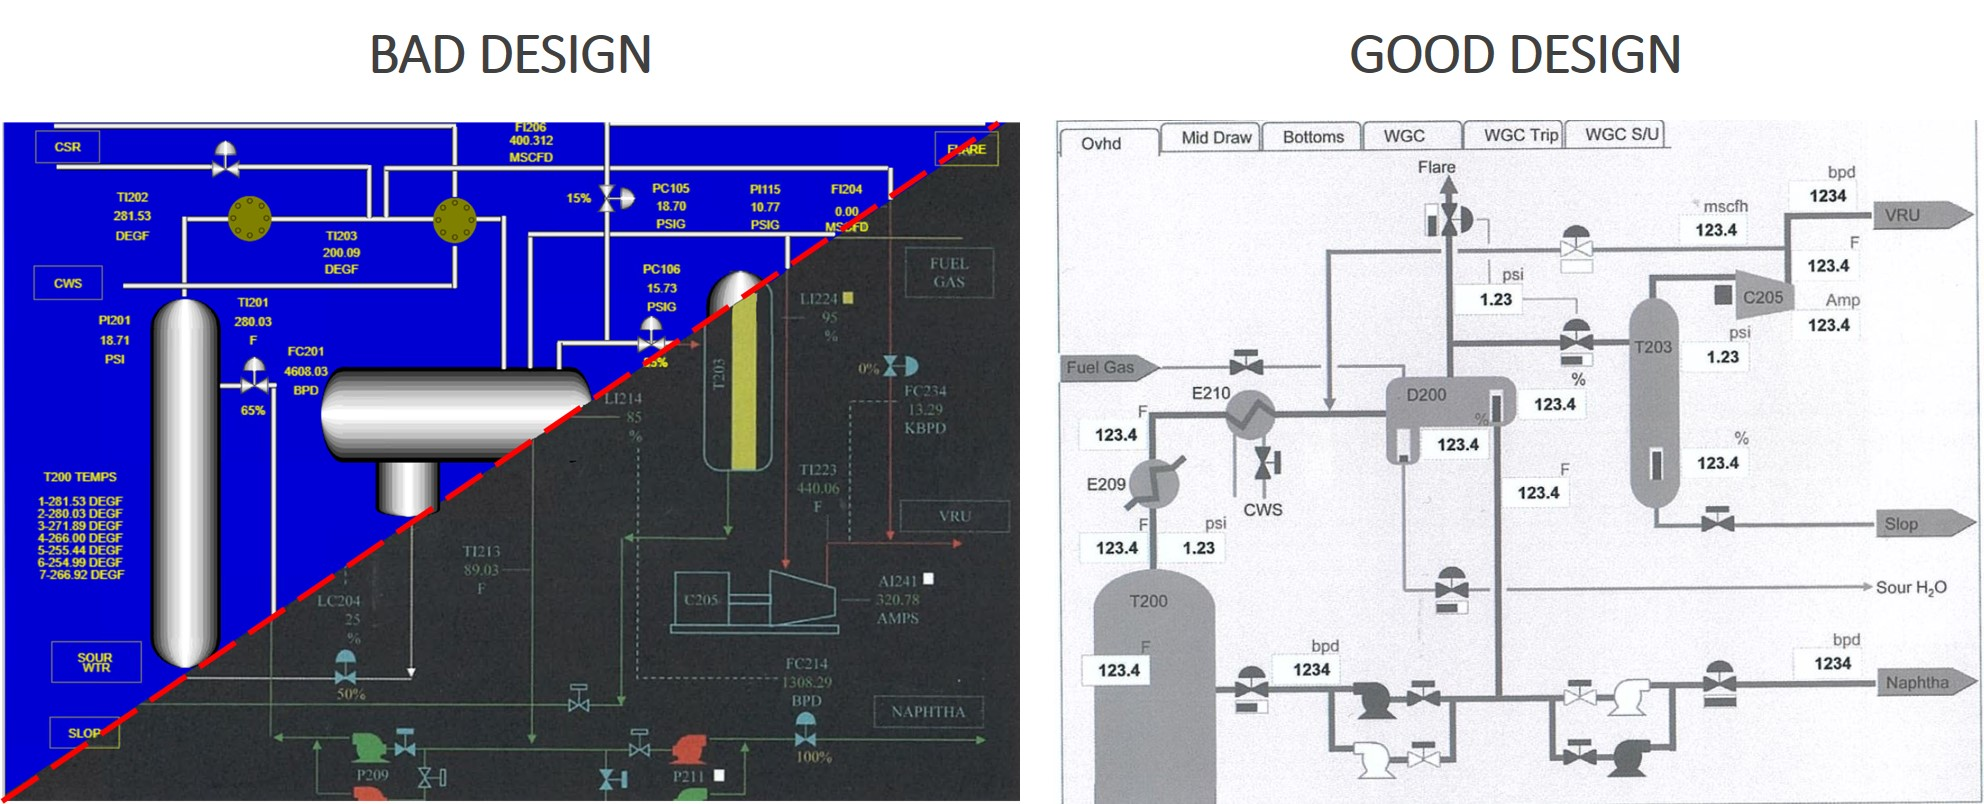 Human Machine Interface - Implementation guidelines: good design VS bad design